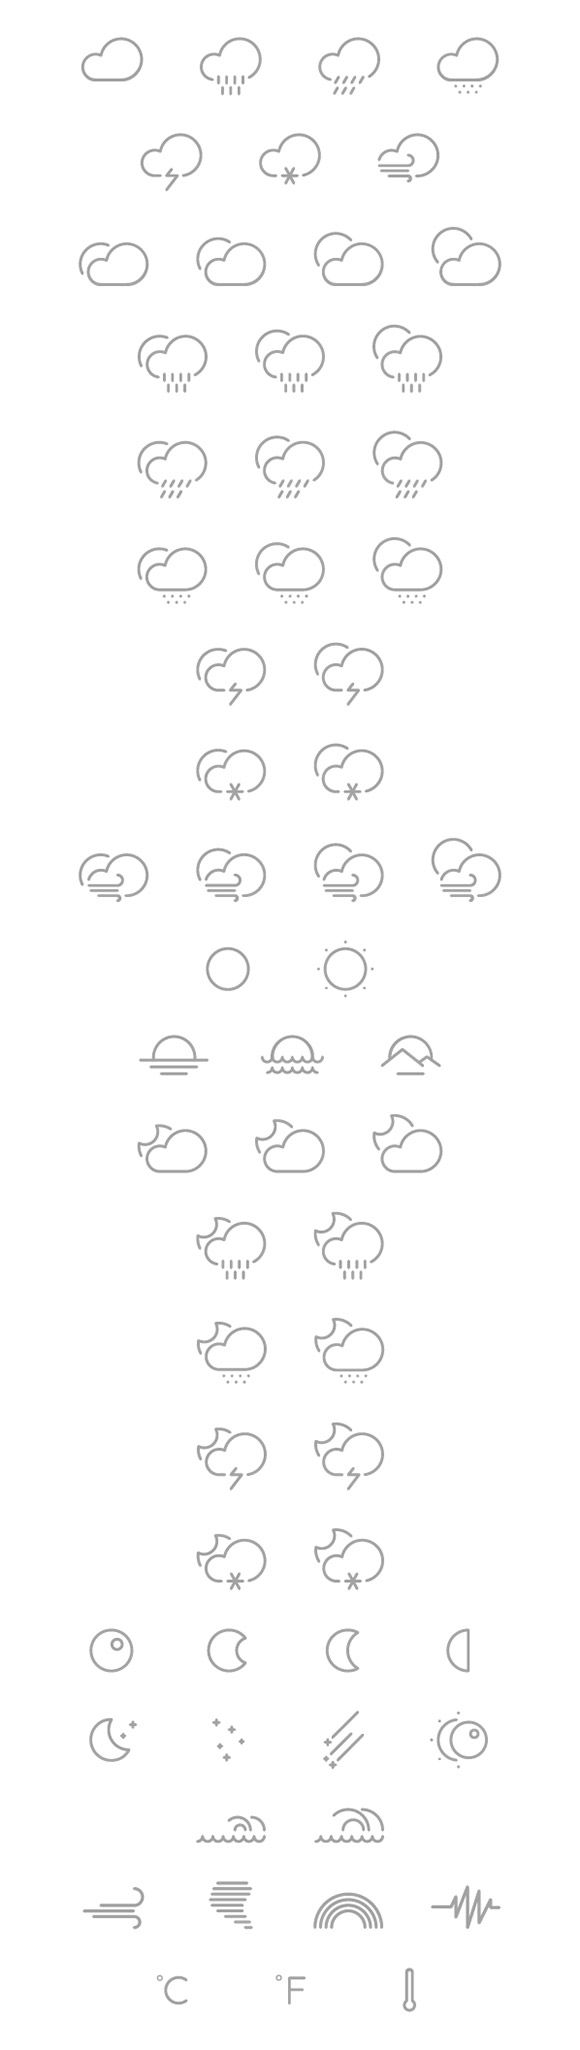 A set of 61 vector shaped outlined weather icons. Free PSD designed and released by Gustavo Cramez.